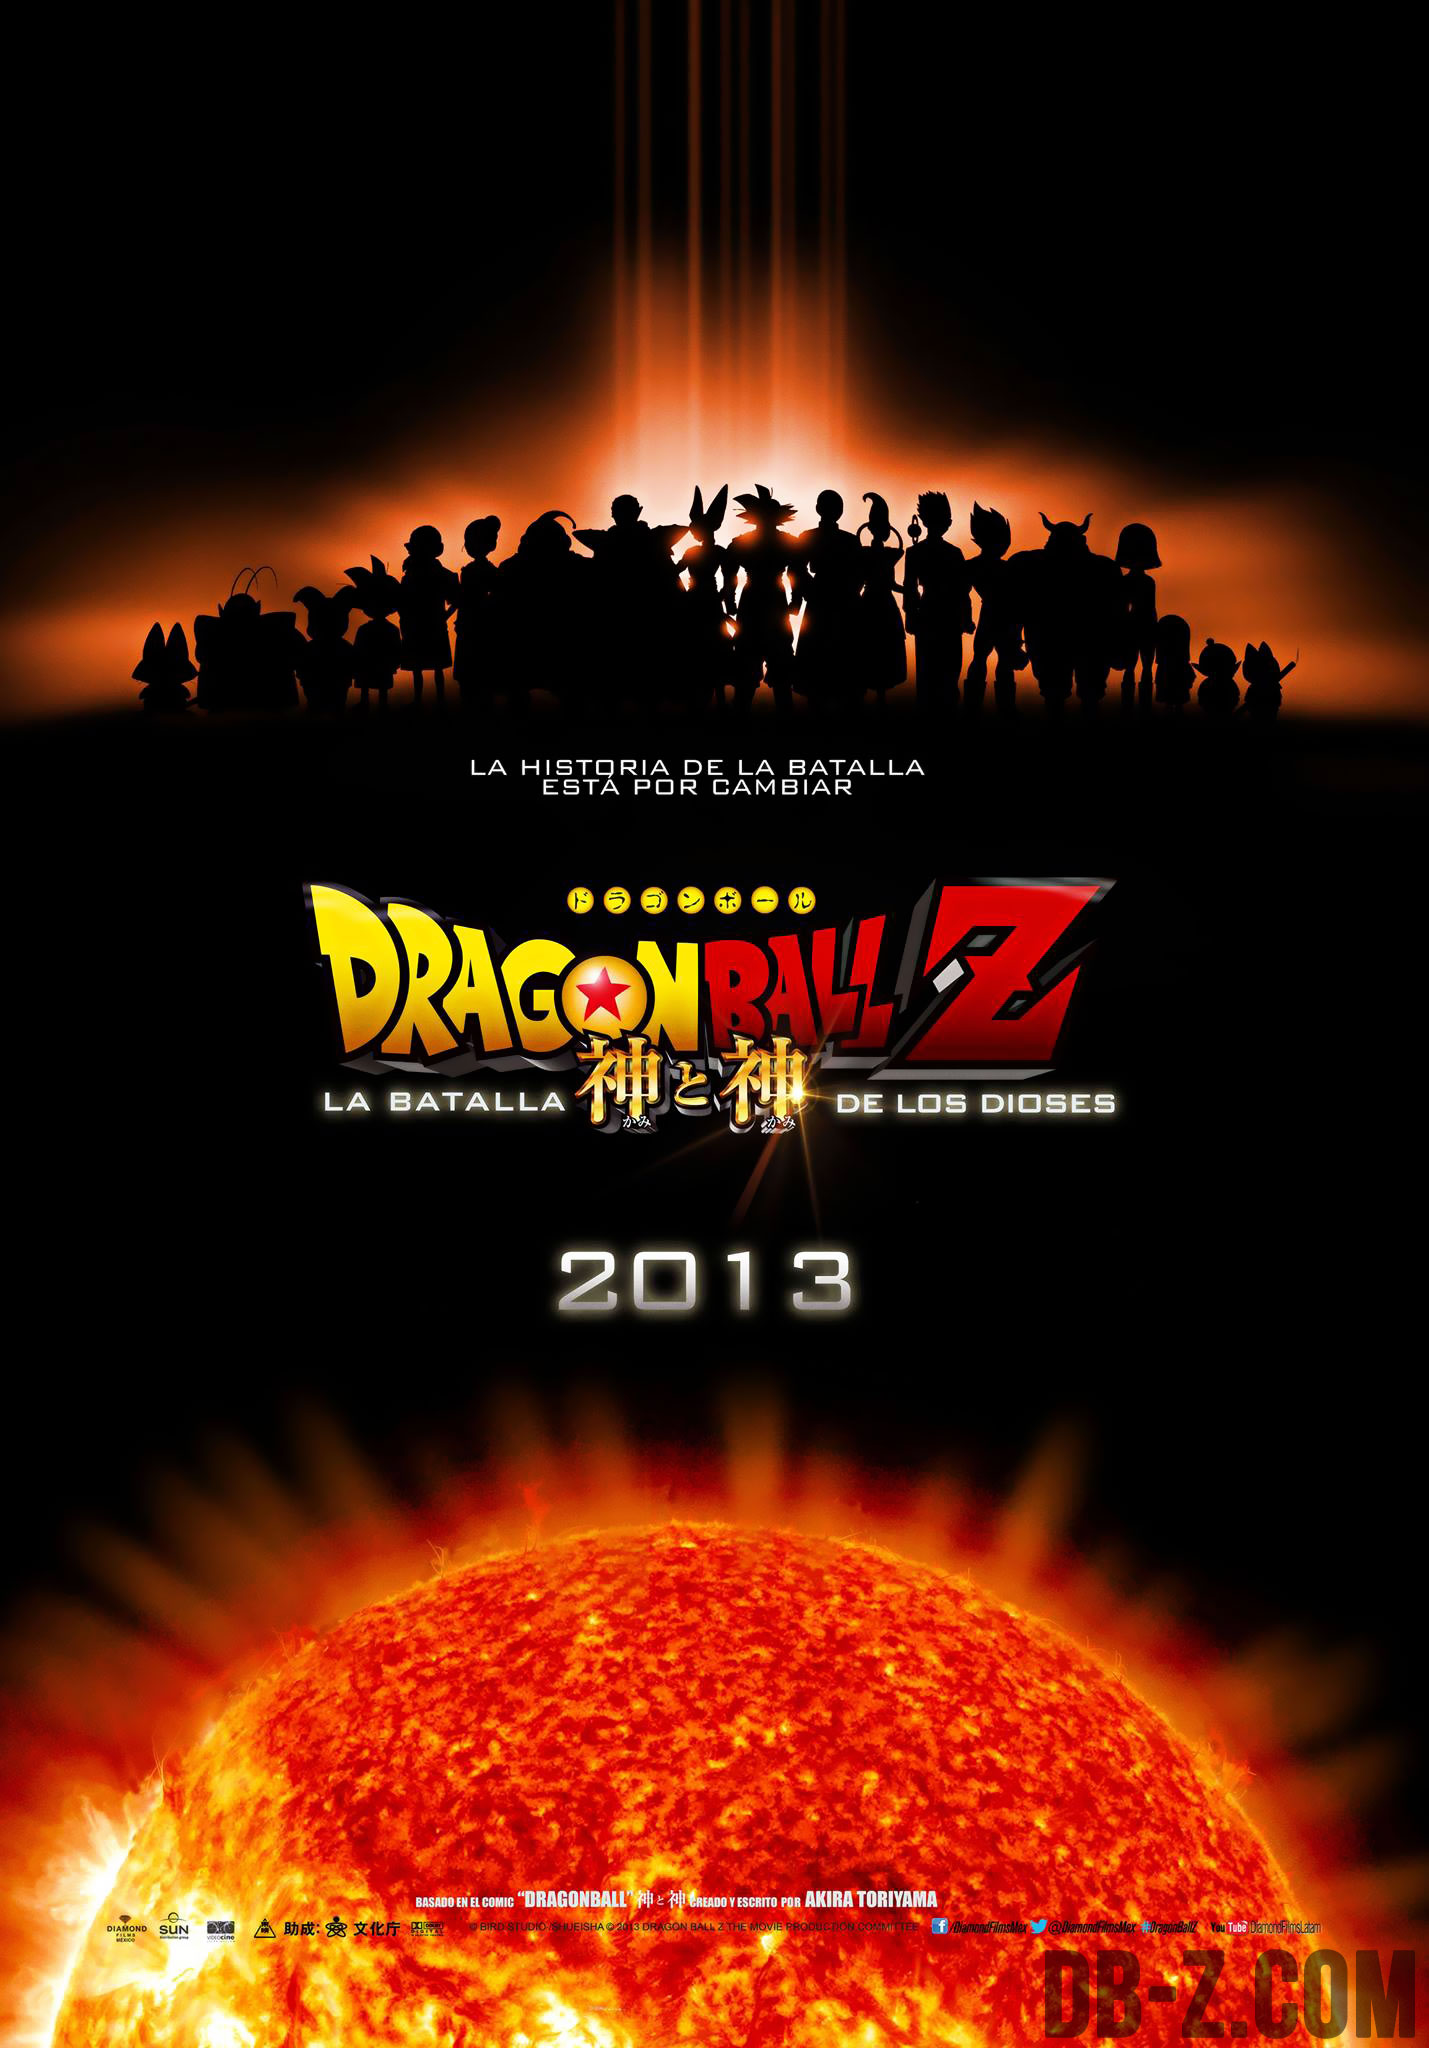 Dragon Ball Z : F - La résurrection de Freezer - Le trailer du film [Avril 2015] - Page 4 Affiche-officielle-dragon-ball-z-battle-of-gods-mexique